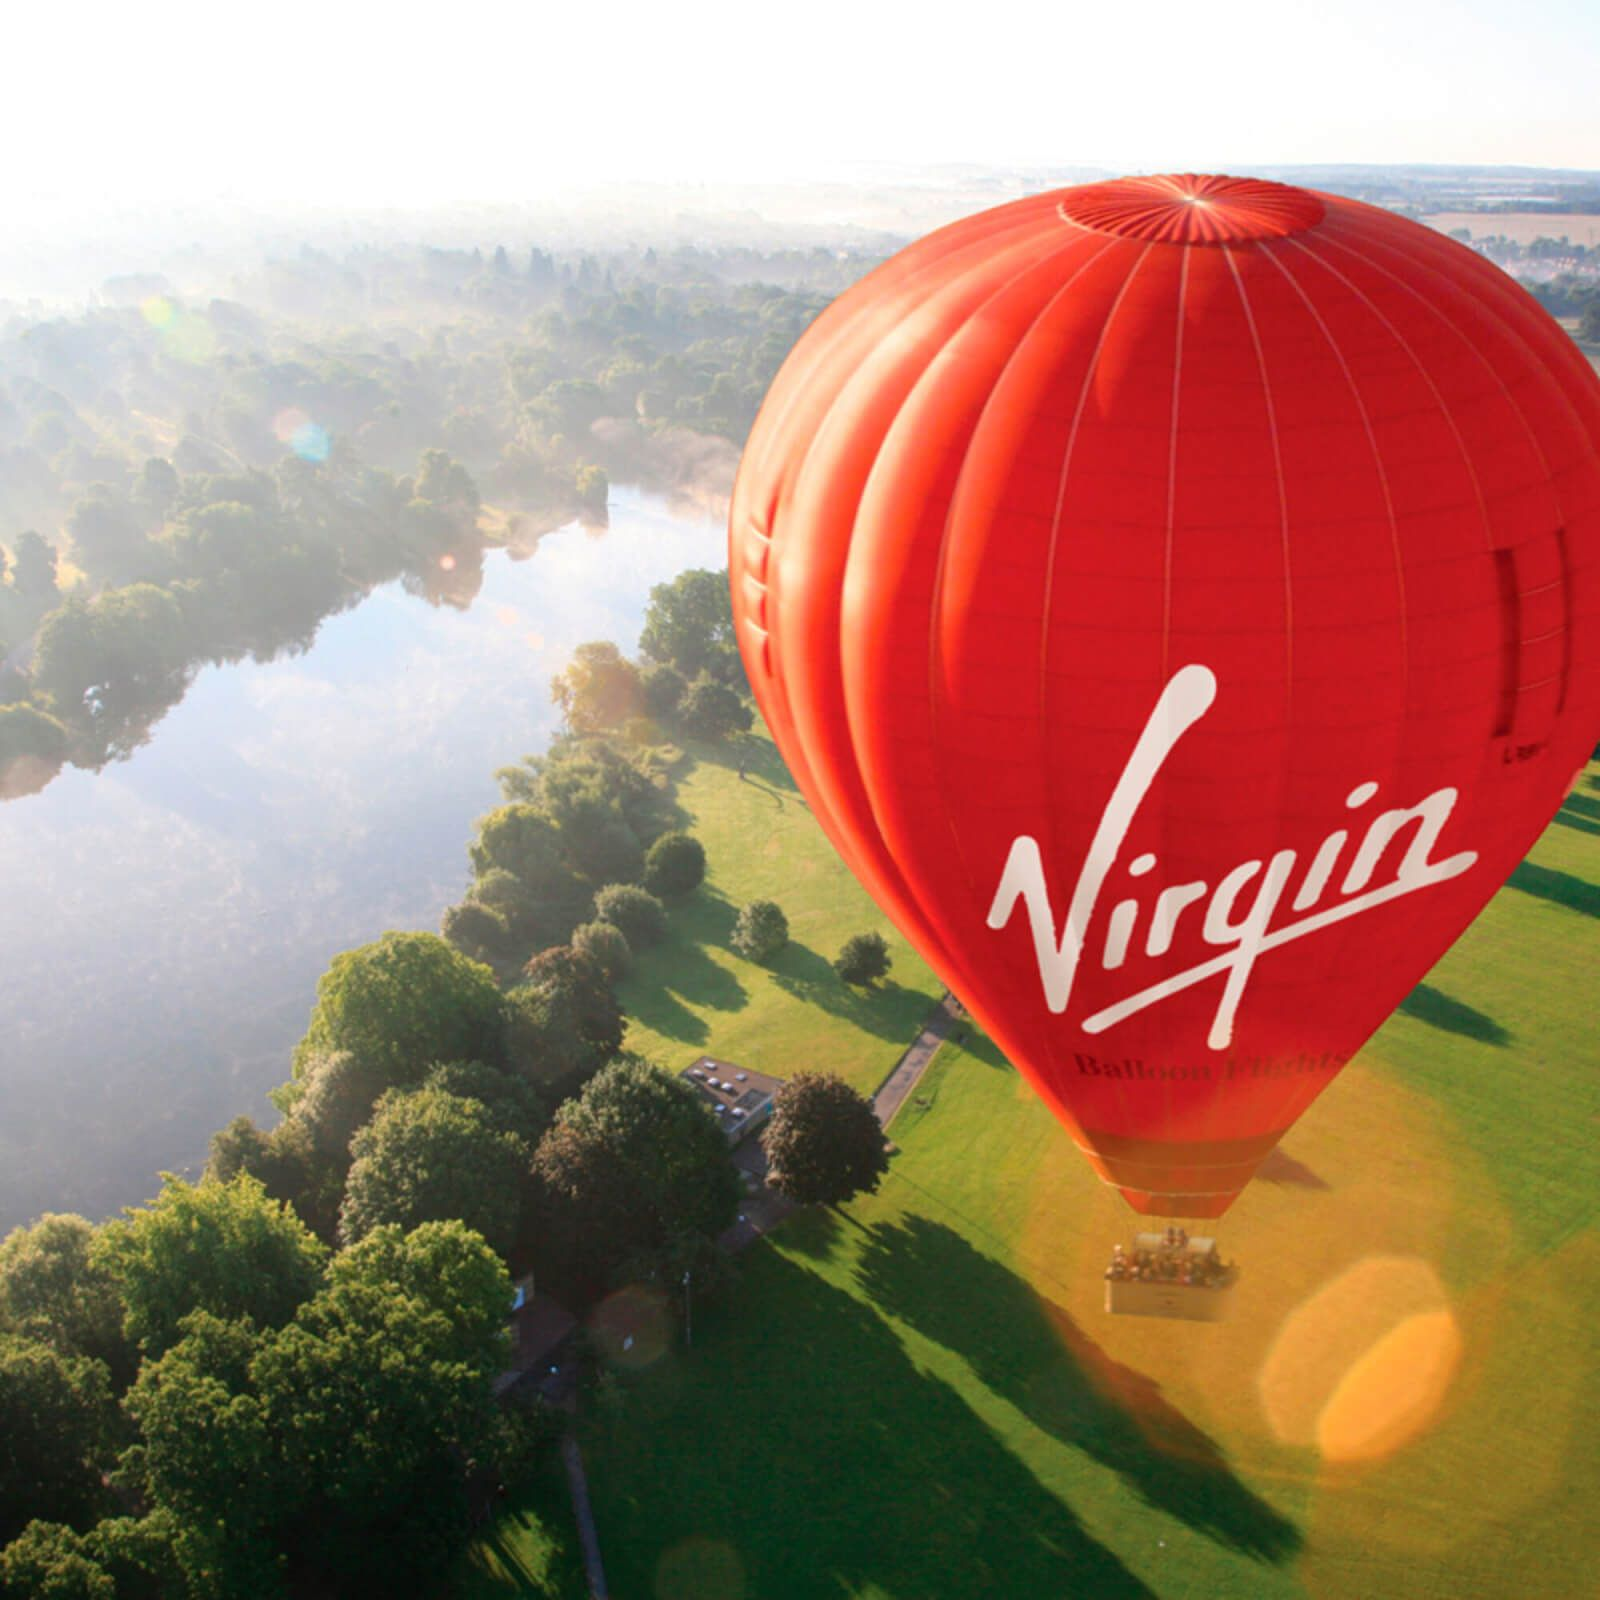 Virgin Celebration Hot Air Ballooning for Two in 2020